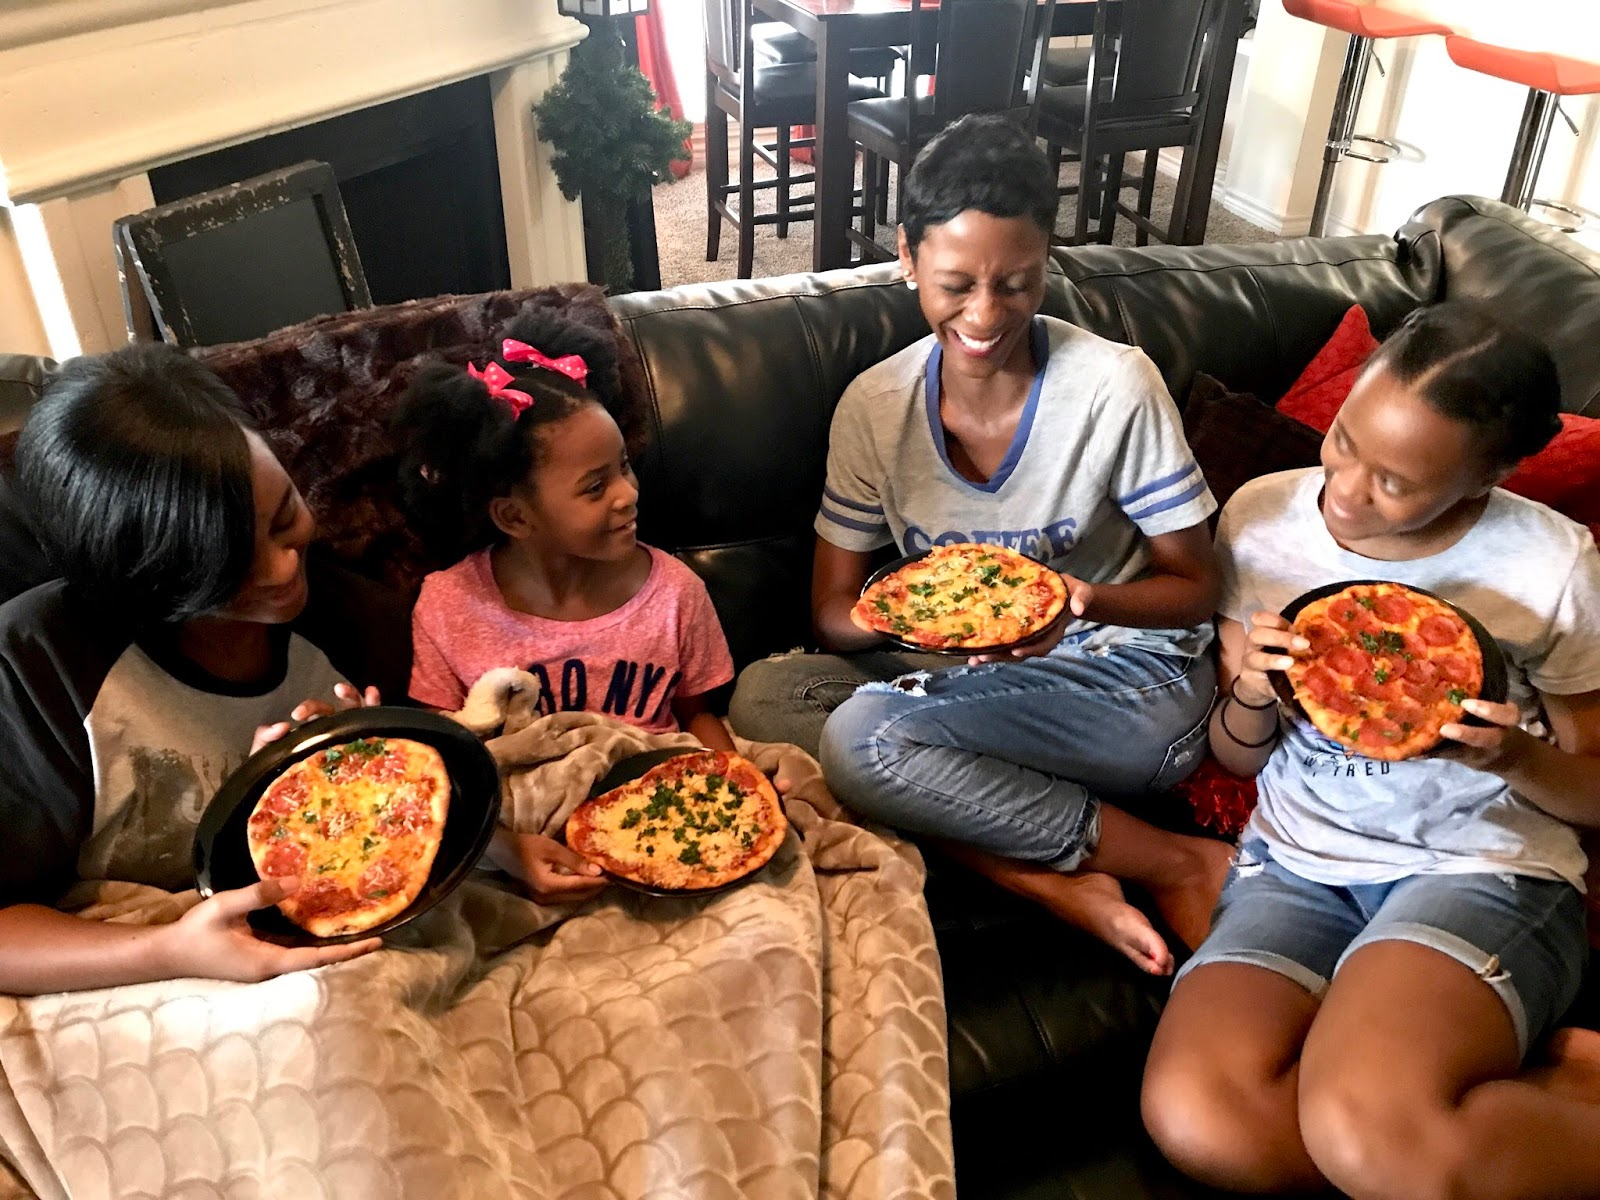 Happy Diaries: Pizza Night + Incredibles 2 + New Hair Do!